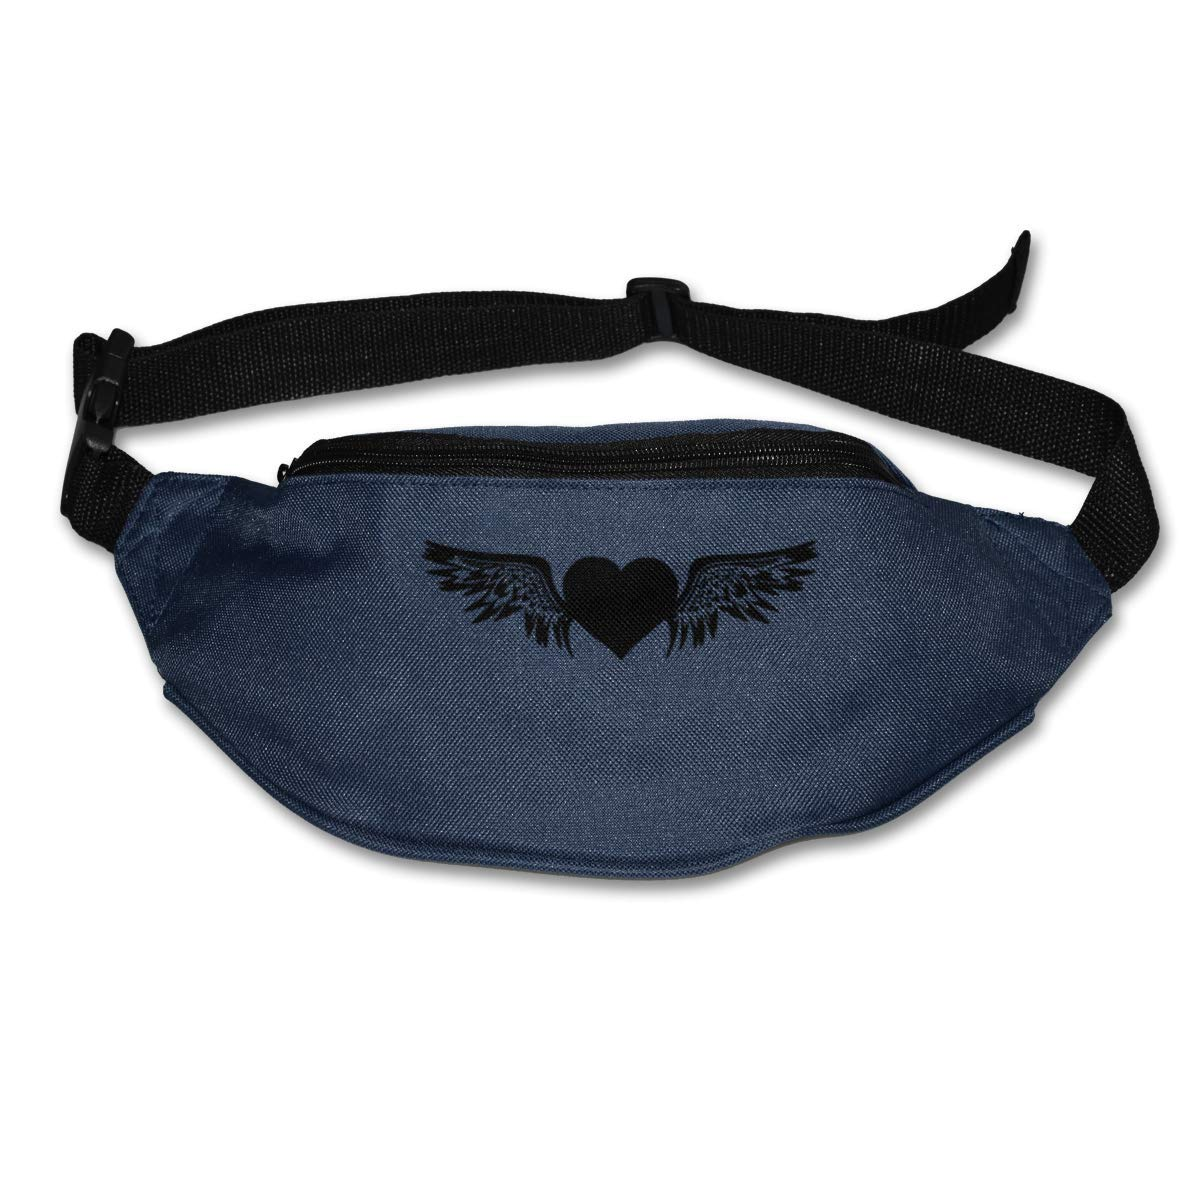 Novelty Colorful Cute Winged Heart Canvas Running Waist Pack Bag Travel